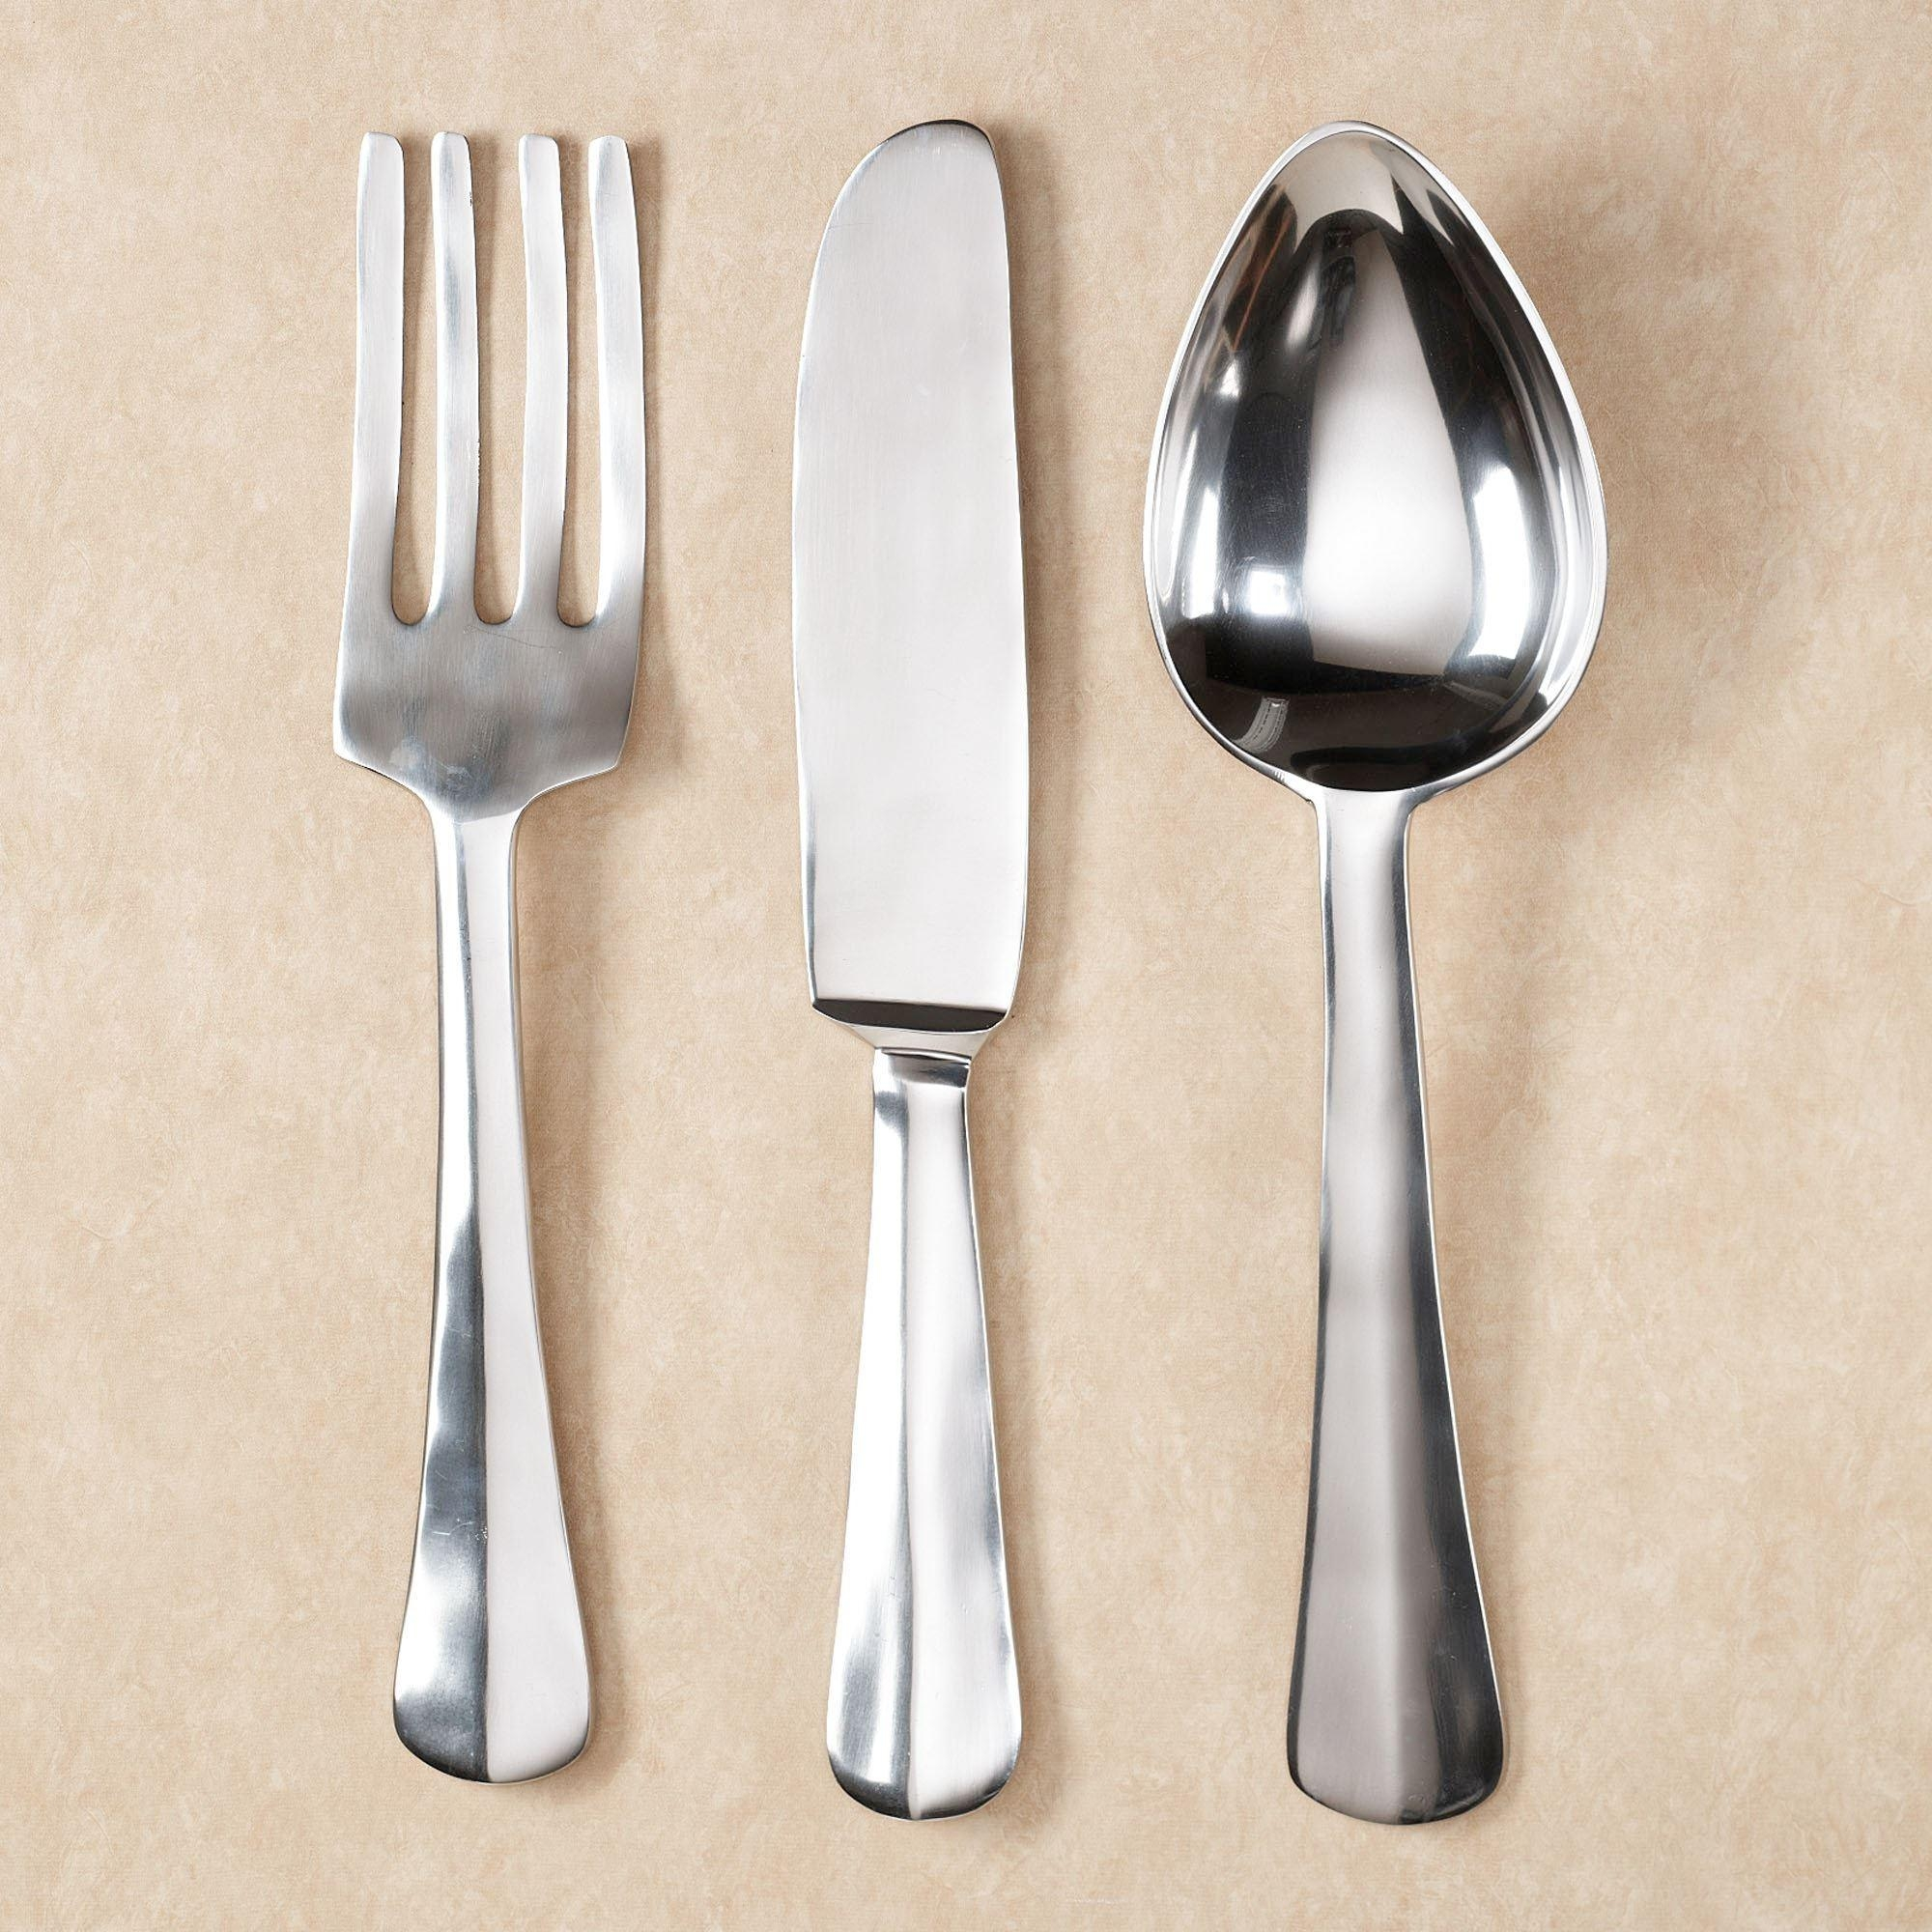 Giant Kitchen Utensils Wall Hangings Set With Regard To Giant Fork And Spoon Wall Art (Image 7 of 20)